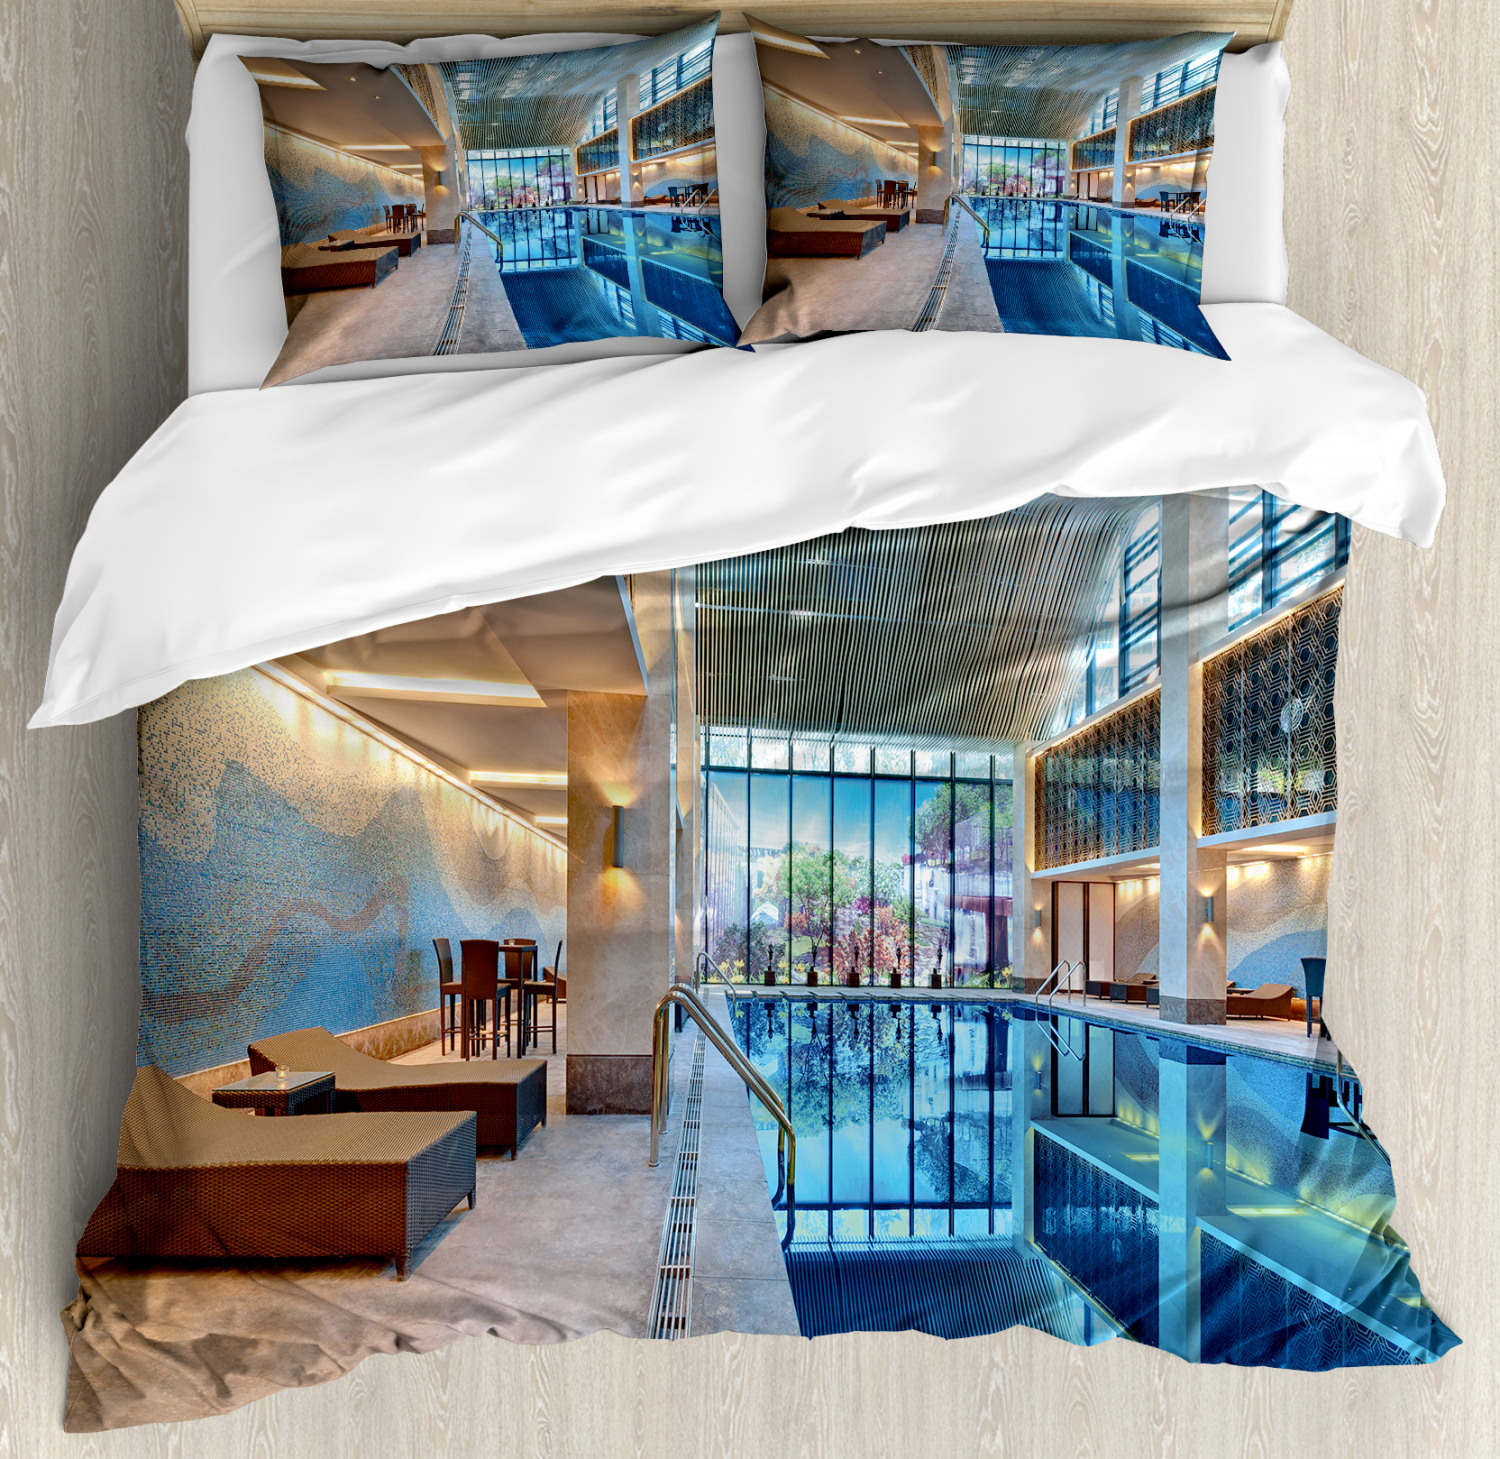 Spa Duvet Cover Set with Pillow Shams Calming Relaxing Pool Seats Print